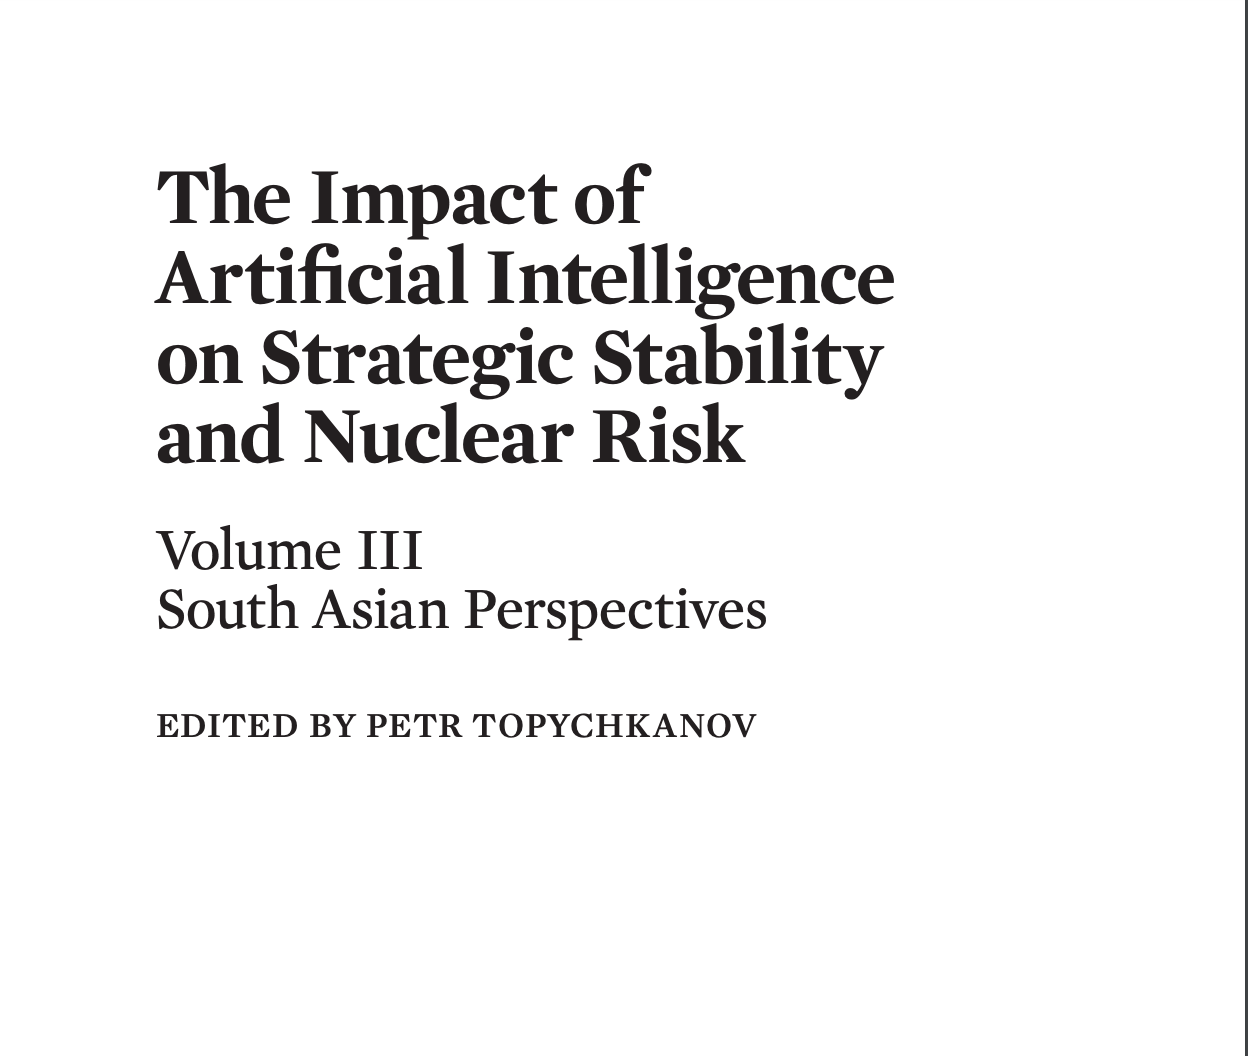 Impact of Artificial Intelligence on Strategic Stability and Nuclear Risk : Volume III South Asian Perspectives.